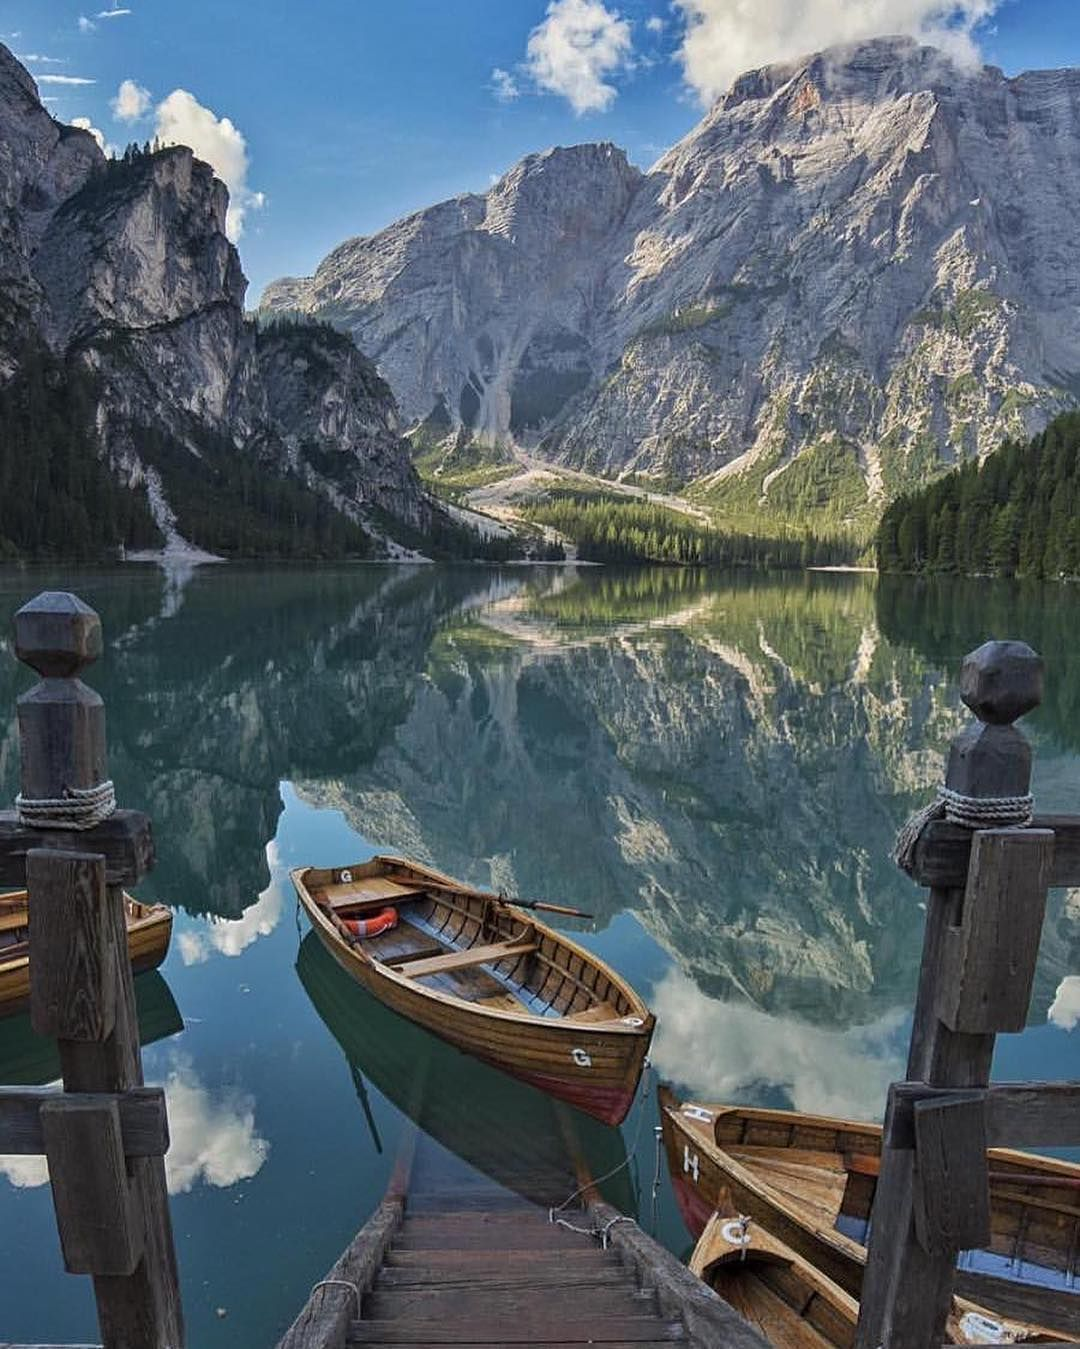 Lago di Braies in Italy. If you don't design your own life plan, chances are you'll fall into someone elses plan. And guess what they have planned for you? Not much. Chase your dreams by day, don't take a century long powernap. Explore that world. Courtesy of @elcampa1969!